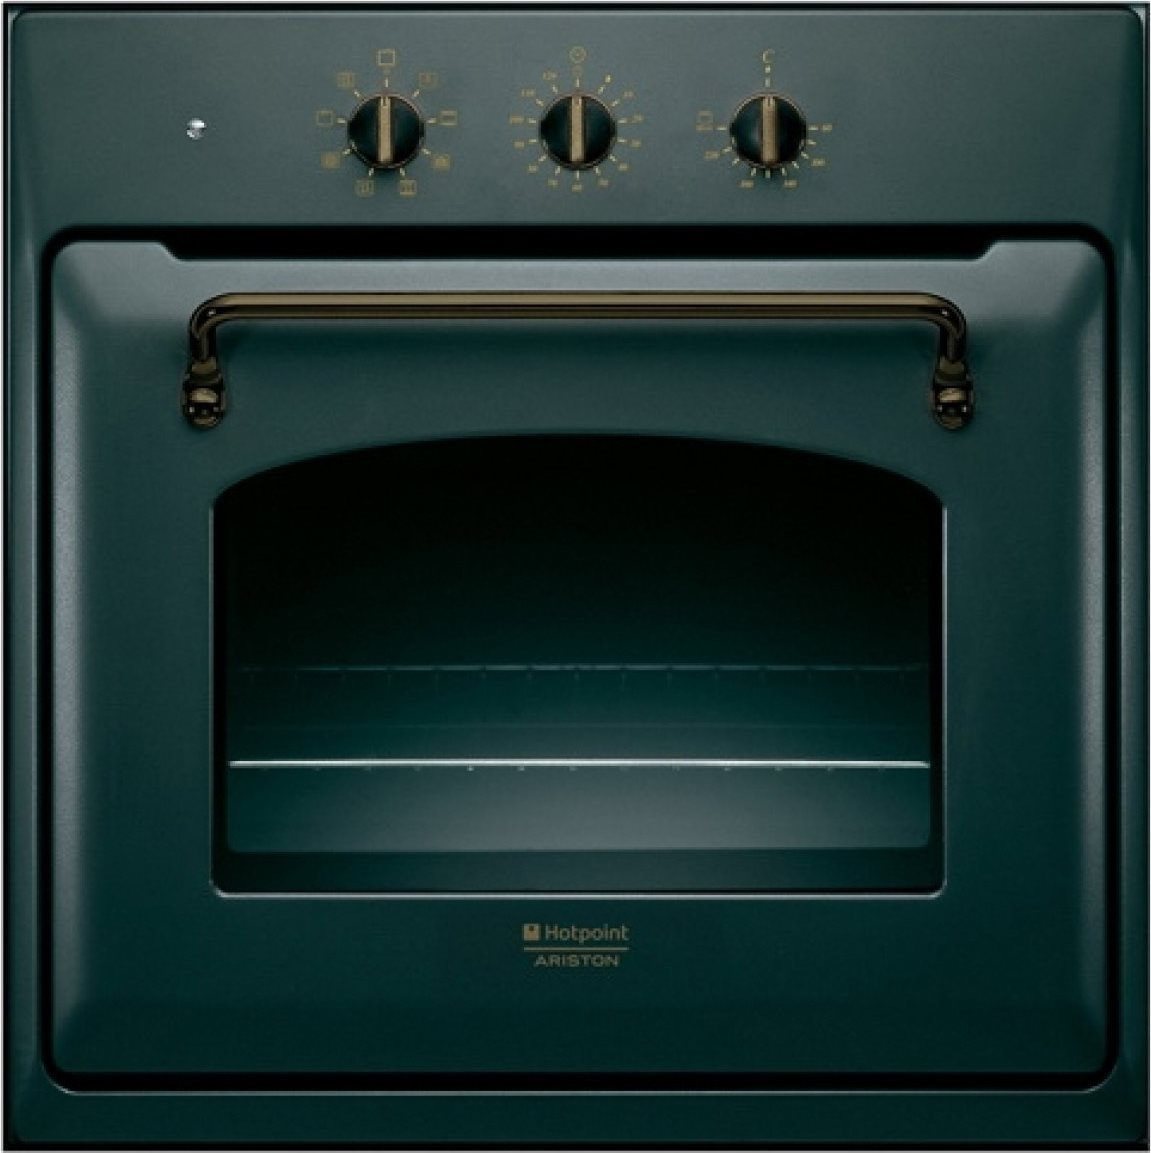 Forno ariston ft 820 1 an ha serie tradizione forno da for Forno ad incasso ariston